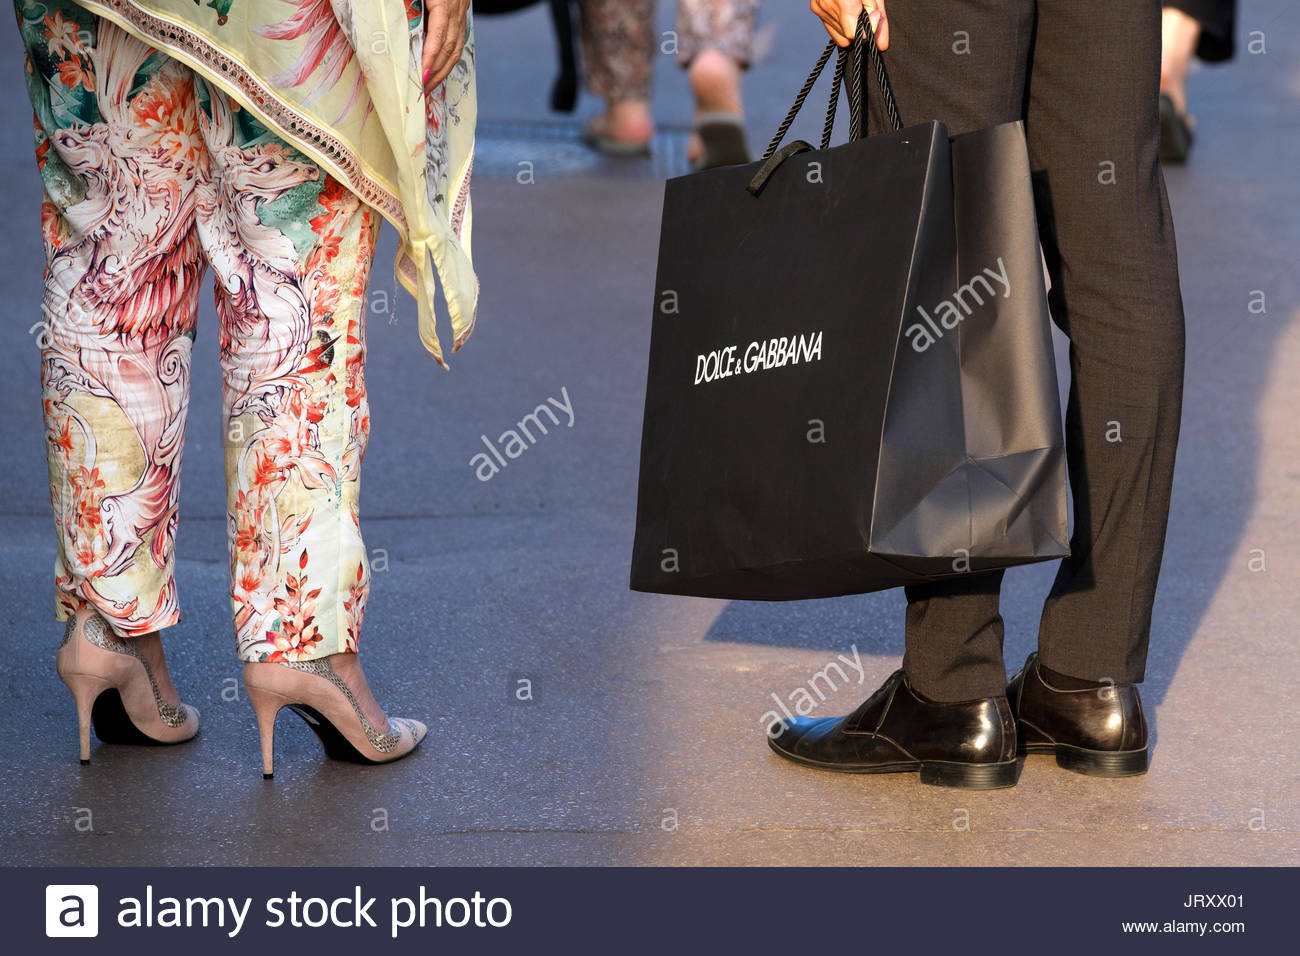 A personal assistant for the Dolci & Gabbana stoe in Cannes, France carry's a shopping bag of purchases made by a wealthy client as she leaves - Stock Image